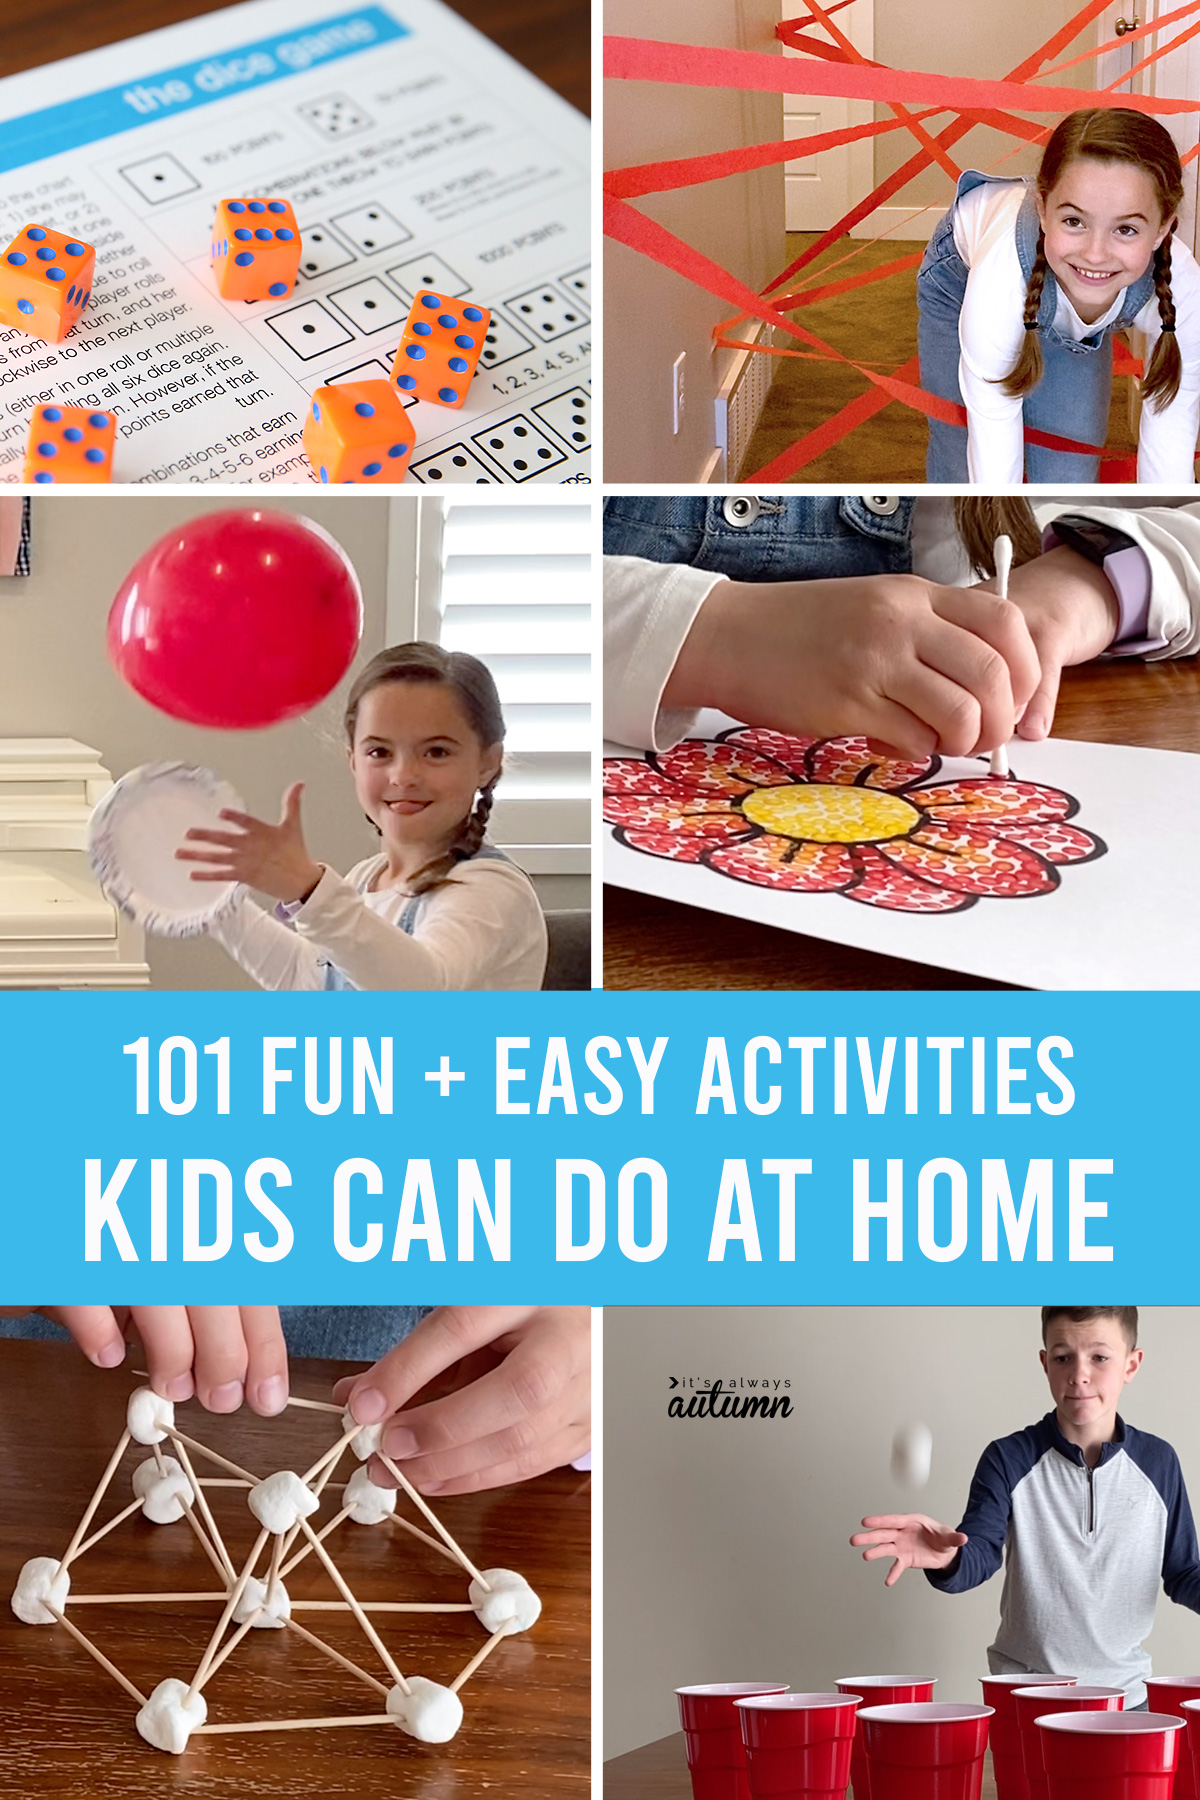 101 fun and easy activities kids can do at home! Tons of simple activities for kids.